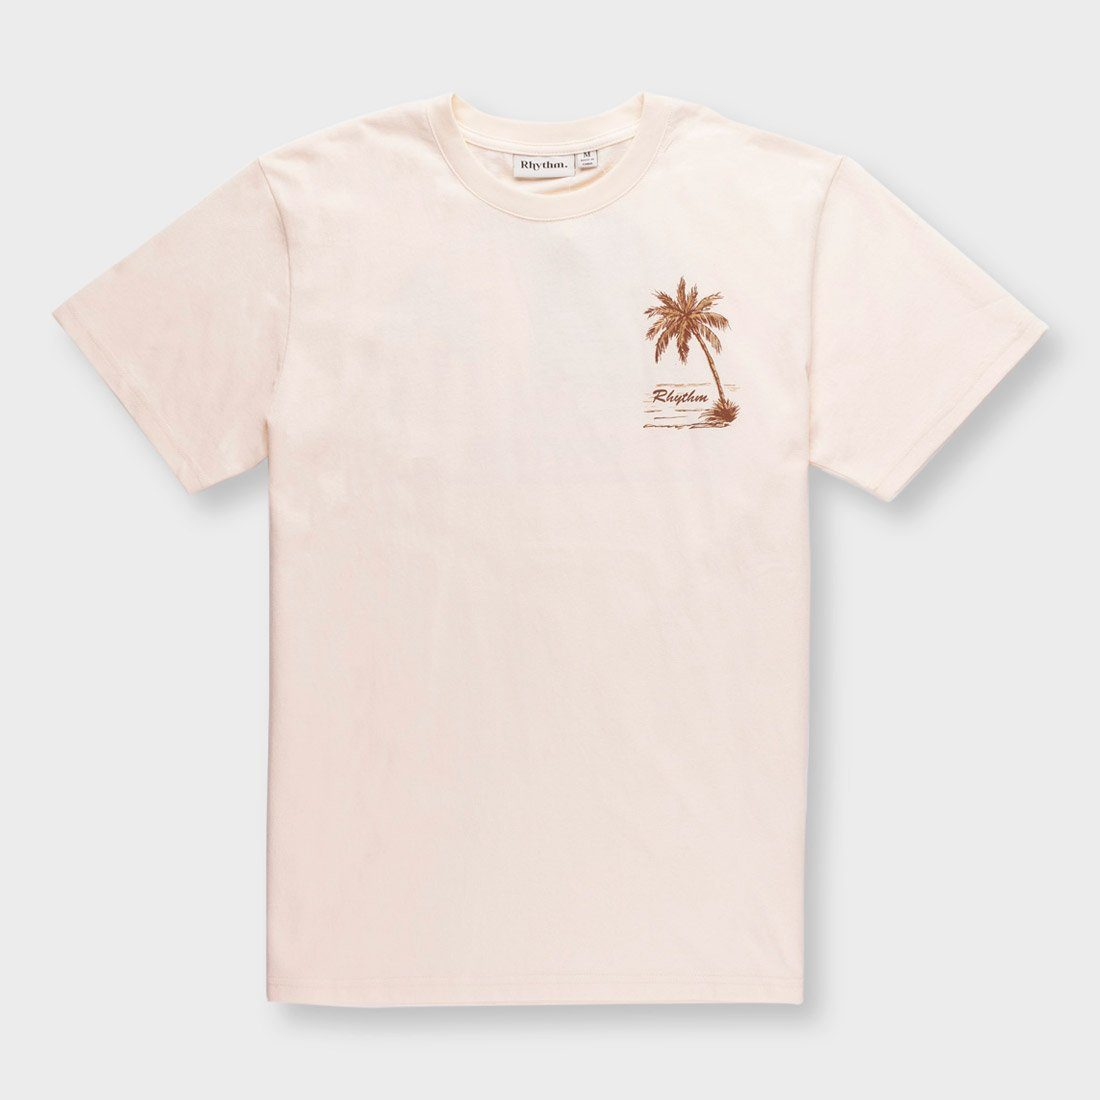 Rhythm Bahamas T-Shirt Natural White